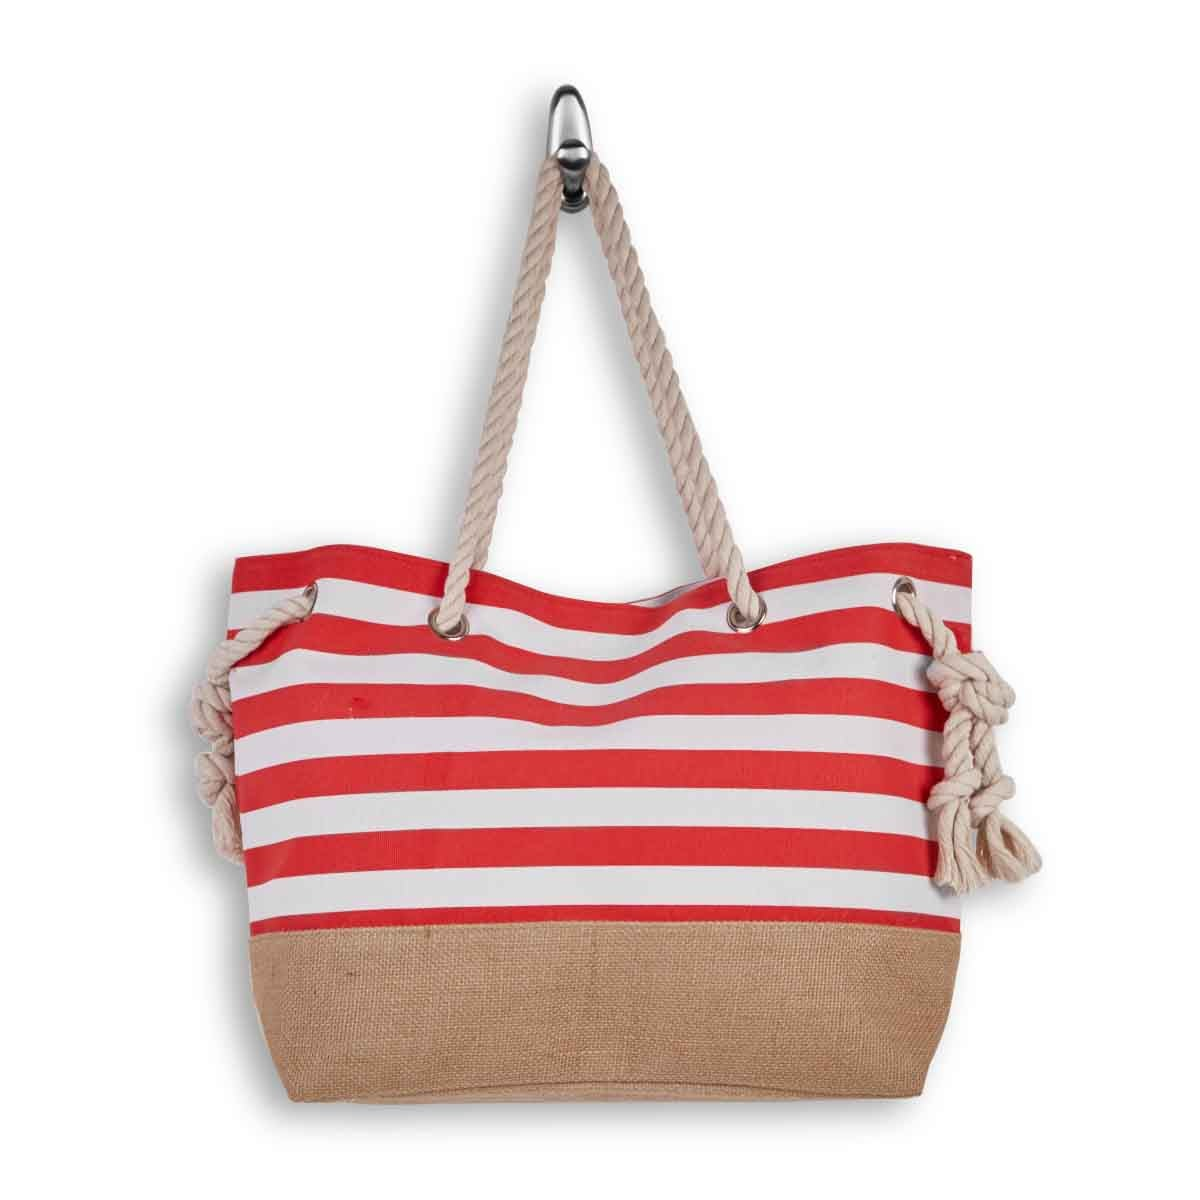 Lds red/wht large canvas tote bag